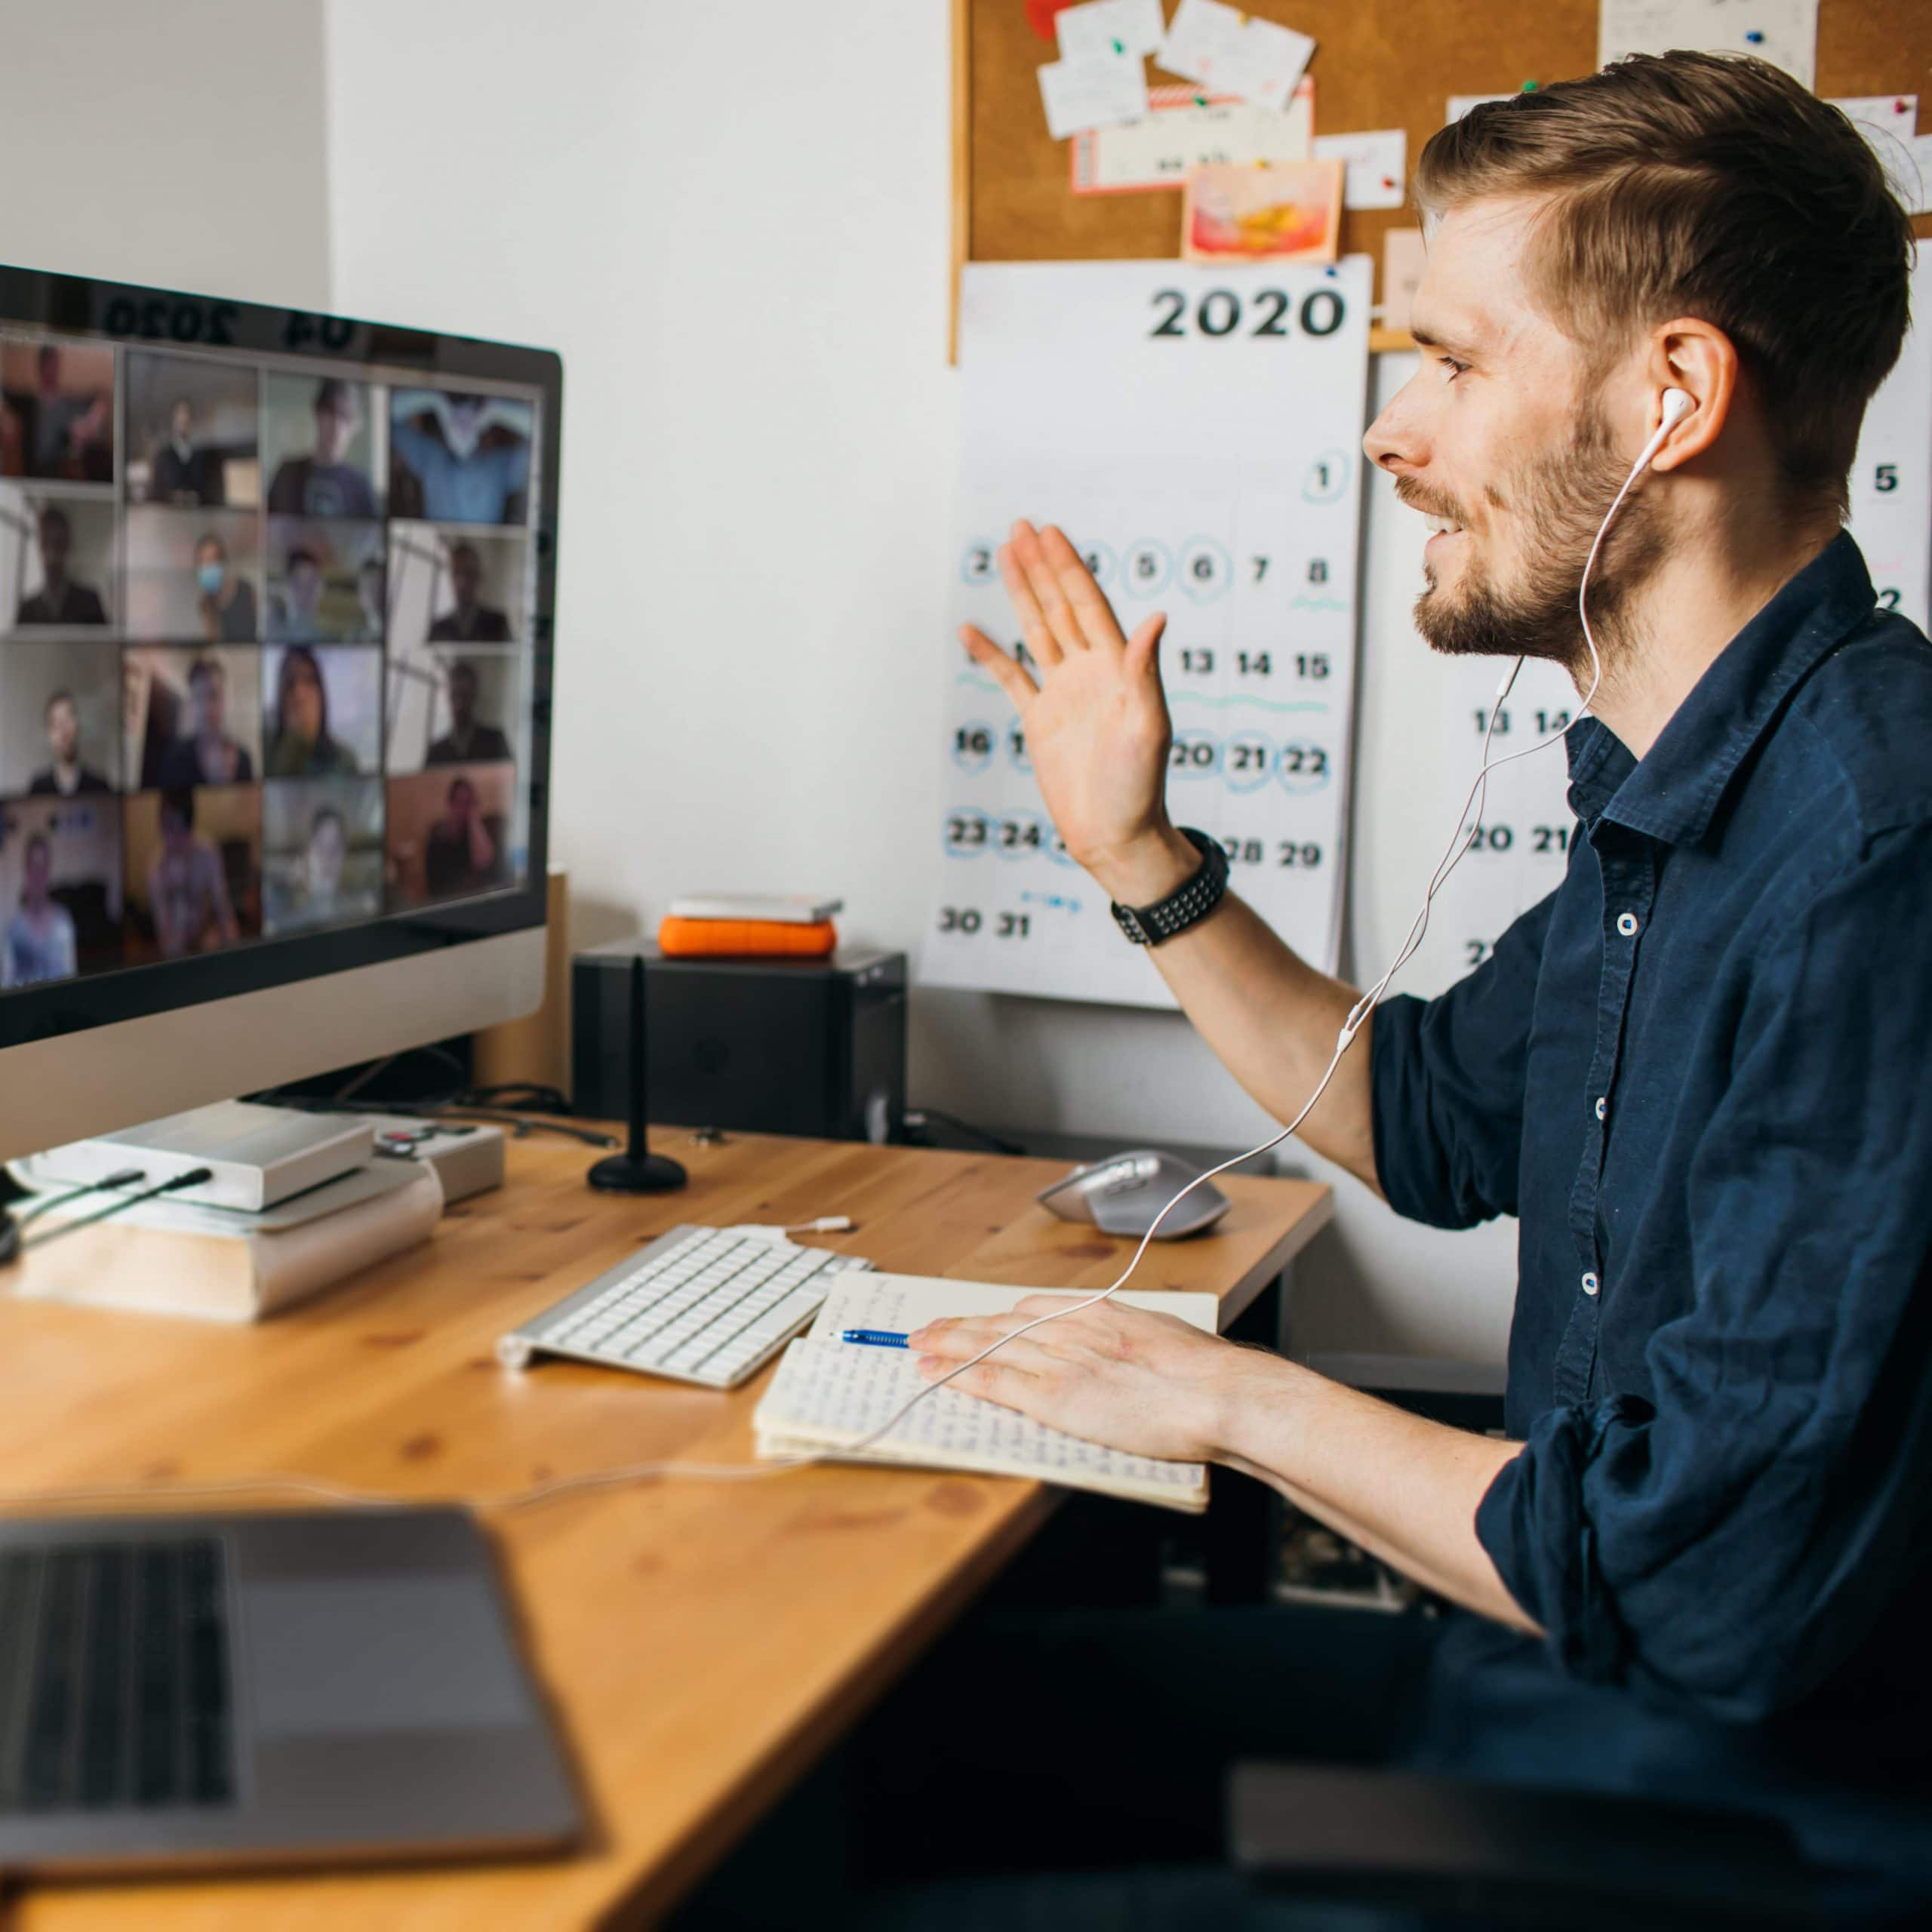 Employee Retention Strategies During COVID-19